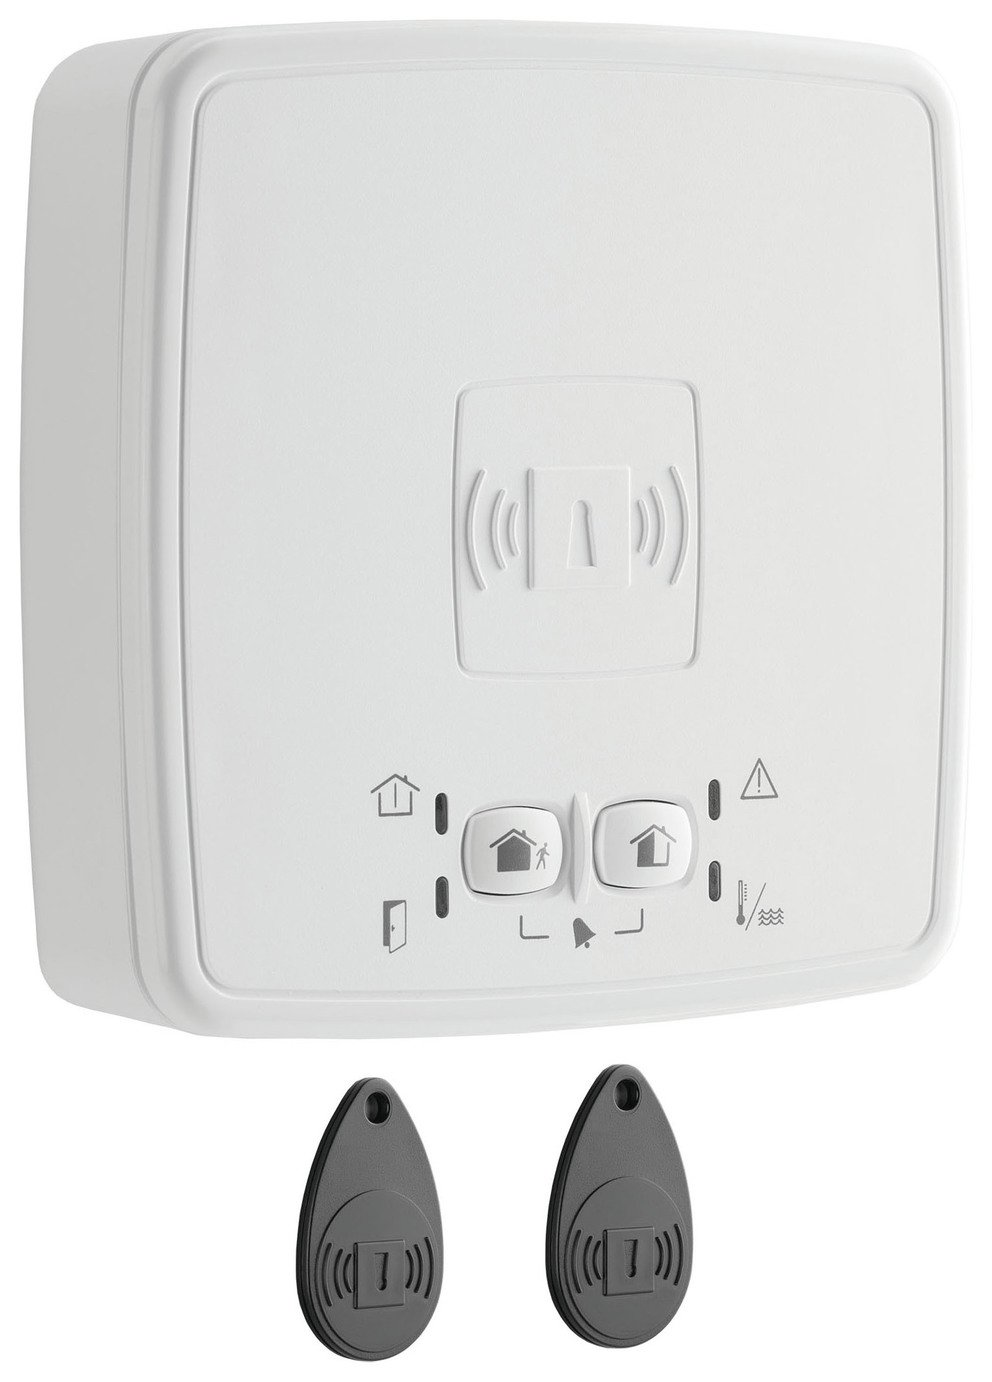 Image of Honeywell Evohome Security Contactless Tag Reader